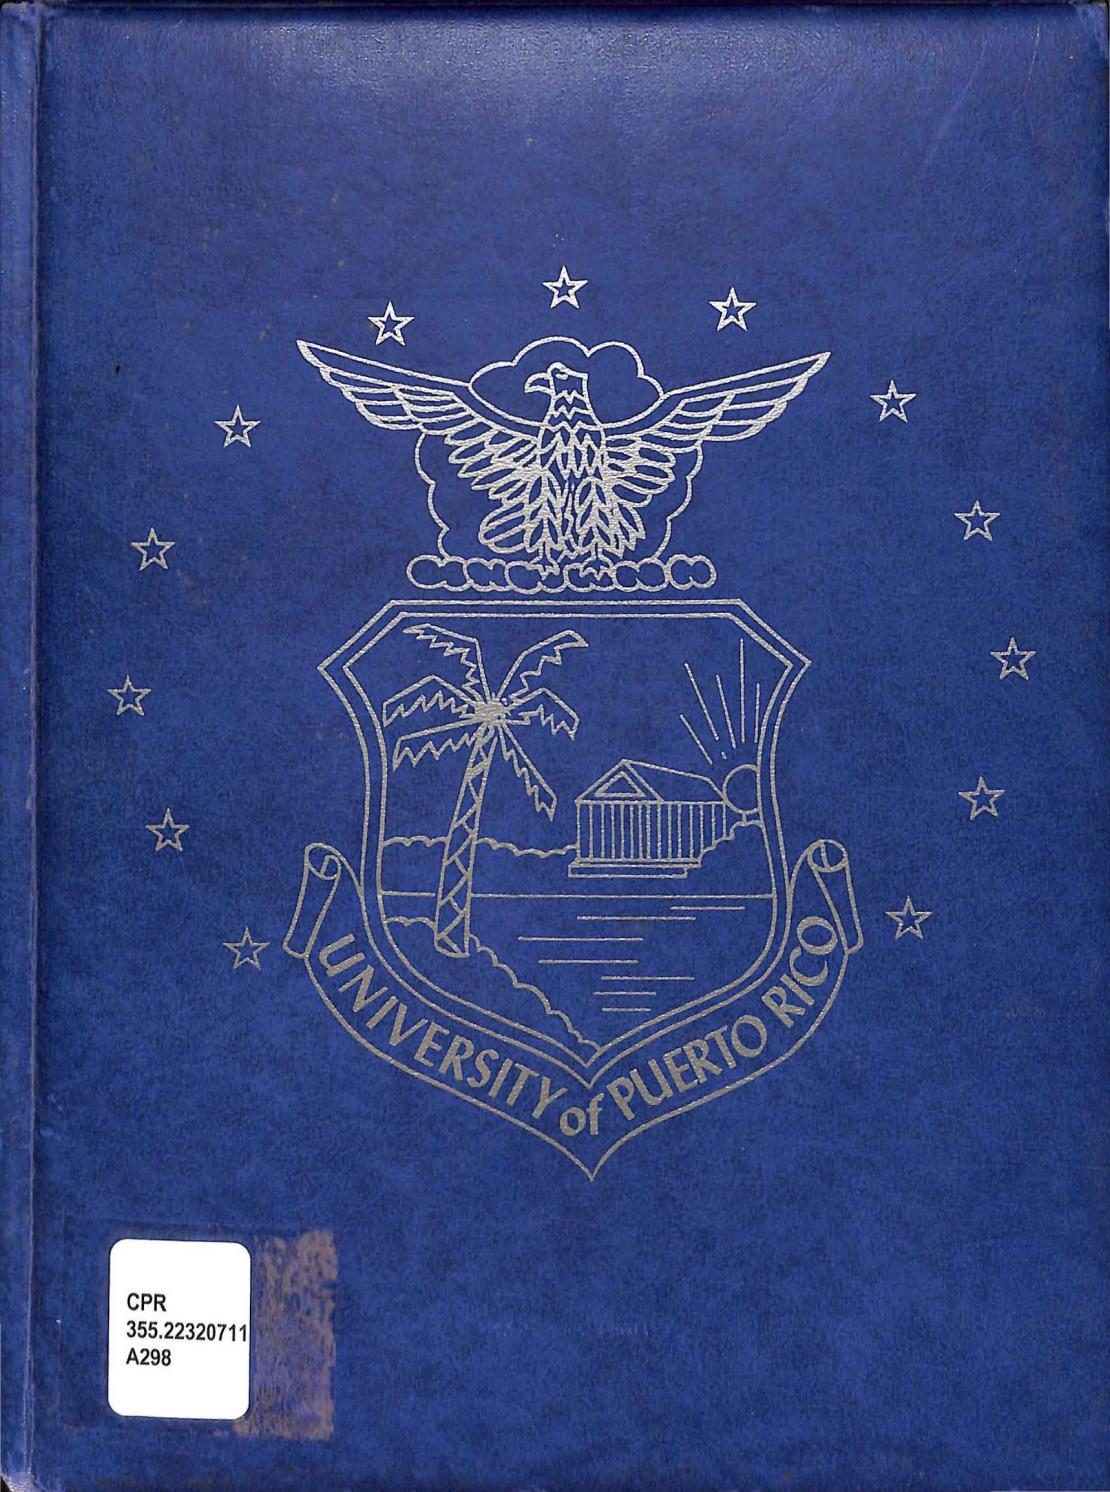 Air Force Rotc Yearbook 1962 By Colecci N Puertorrique A Upr Rp  # Muebles Gustavo Martin